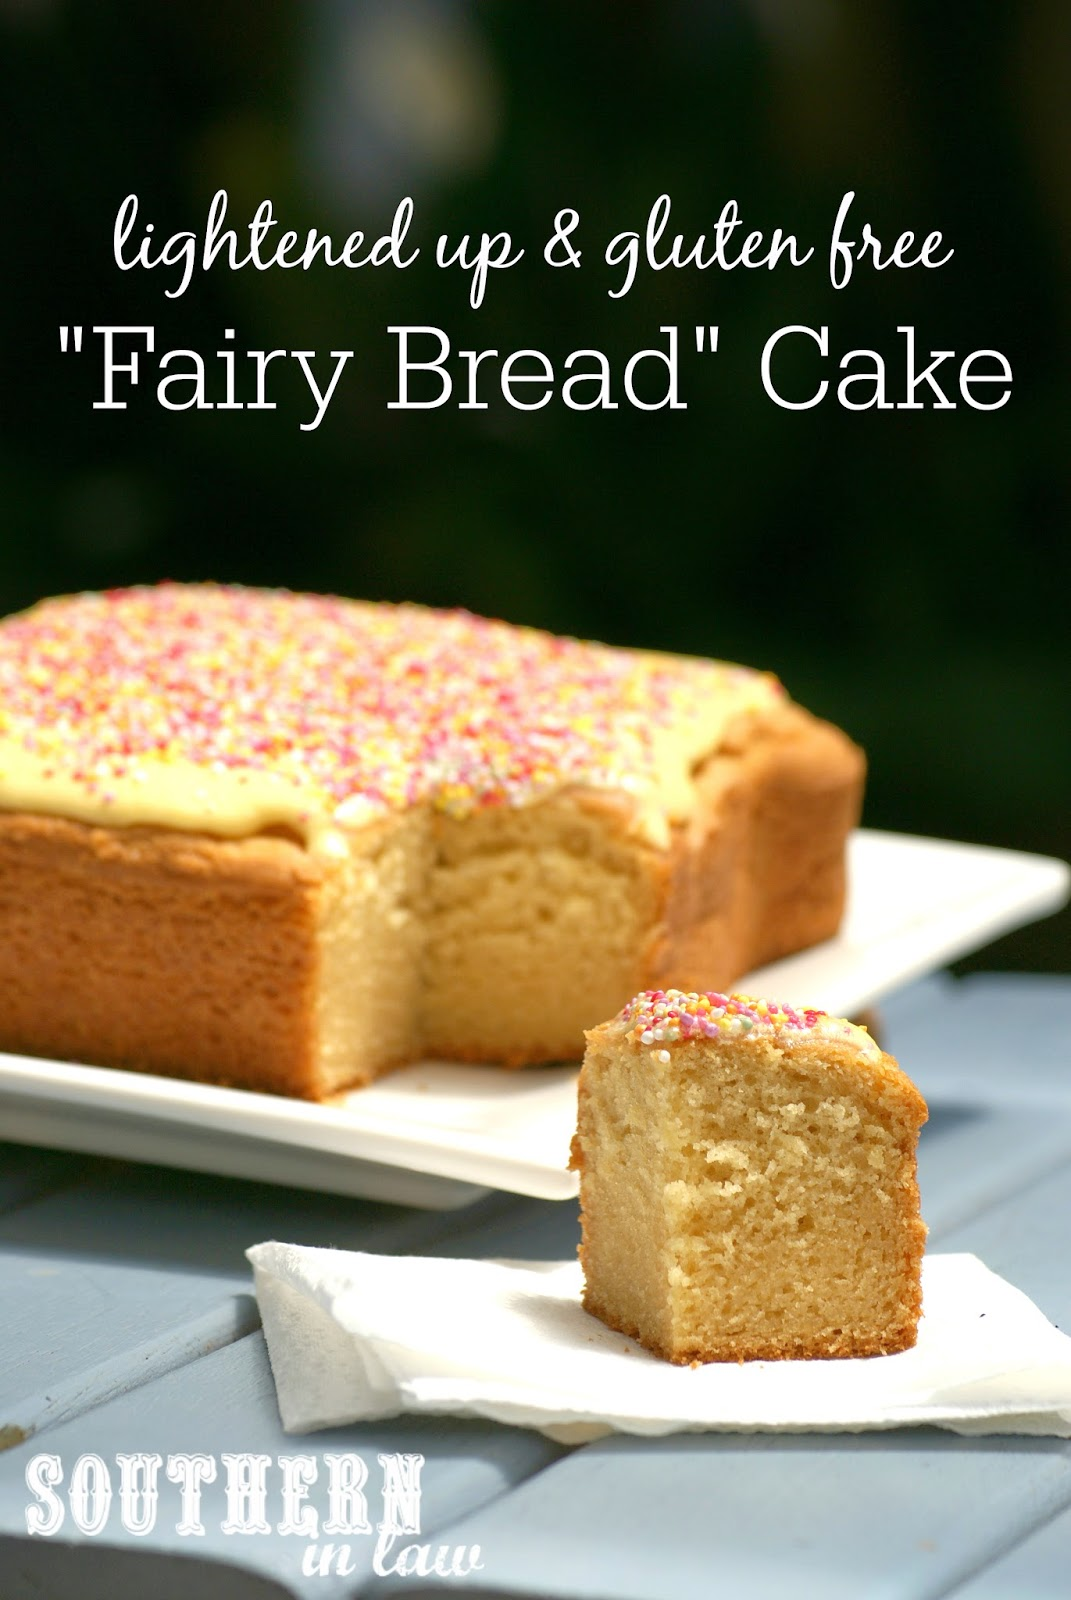 Gluten Free Fairy Bread Cake Recipe - Low Fat Butter Cake Recipe - Lower fat, lower sugar, gluten free, kid friendly, healthy kids party recipes, cake recipes